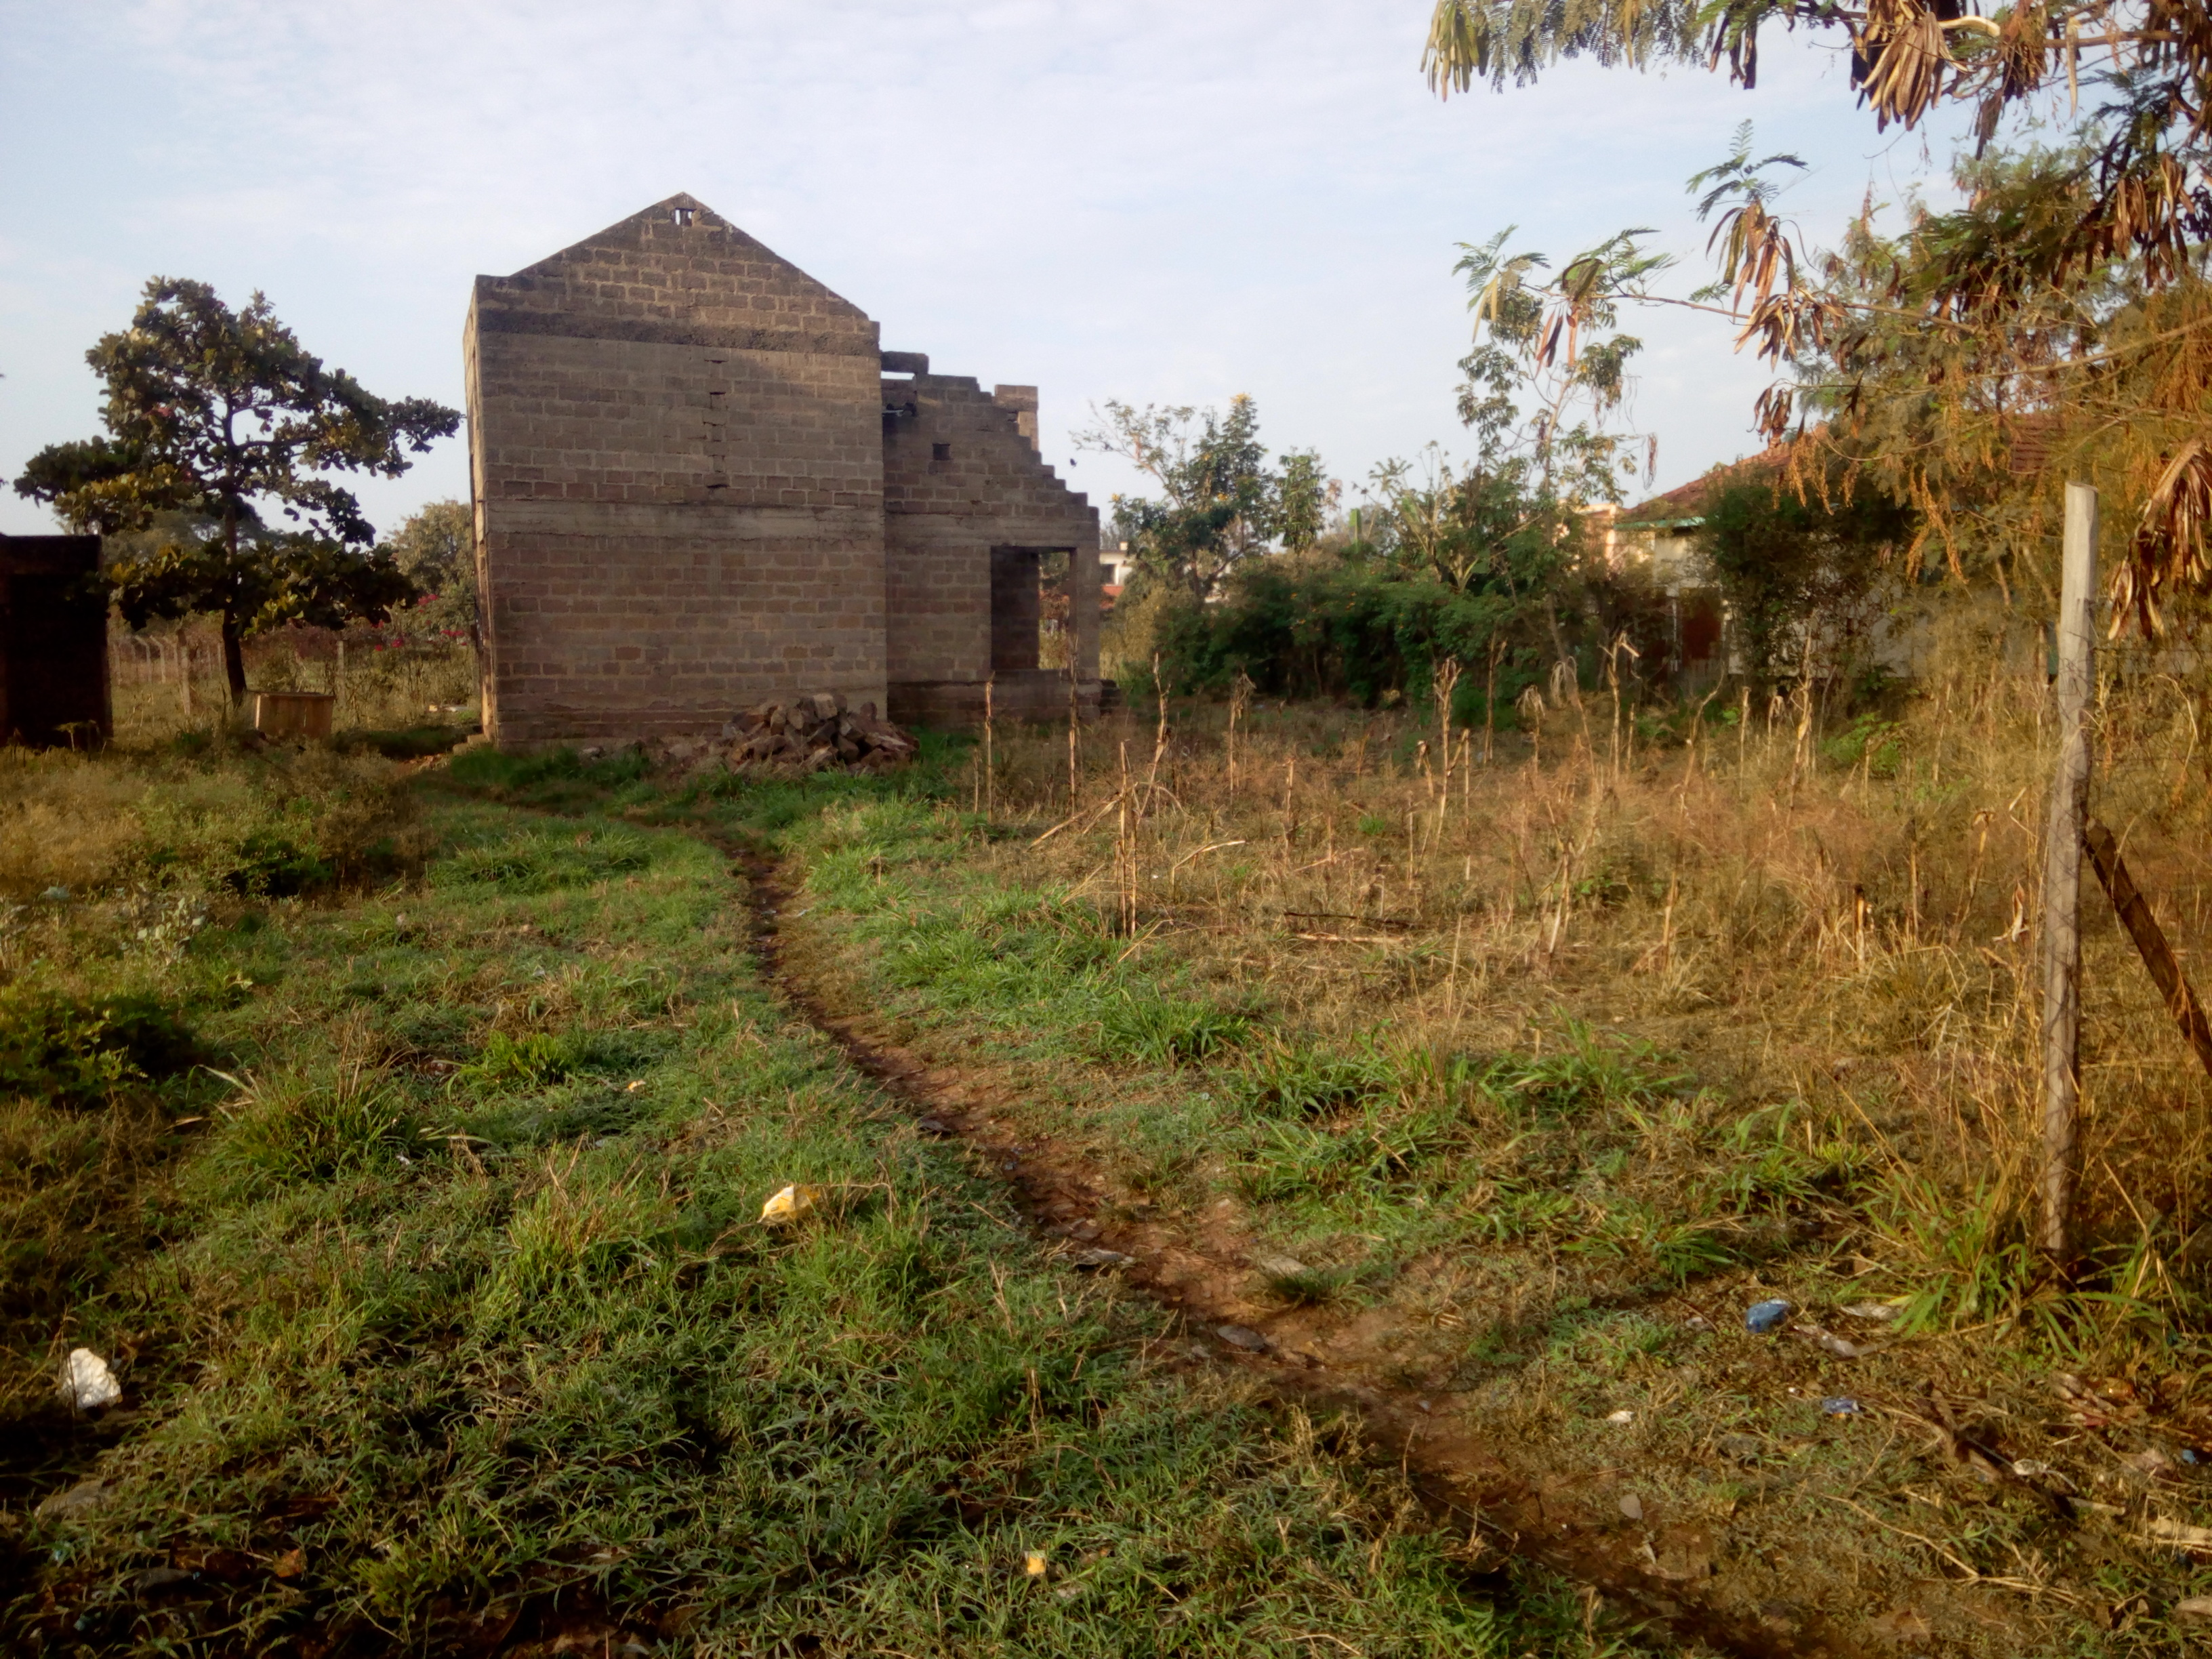 Land for sale in Kisumu Kenya